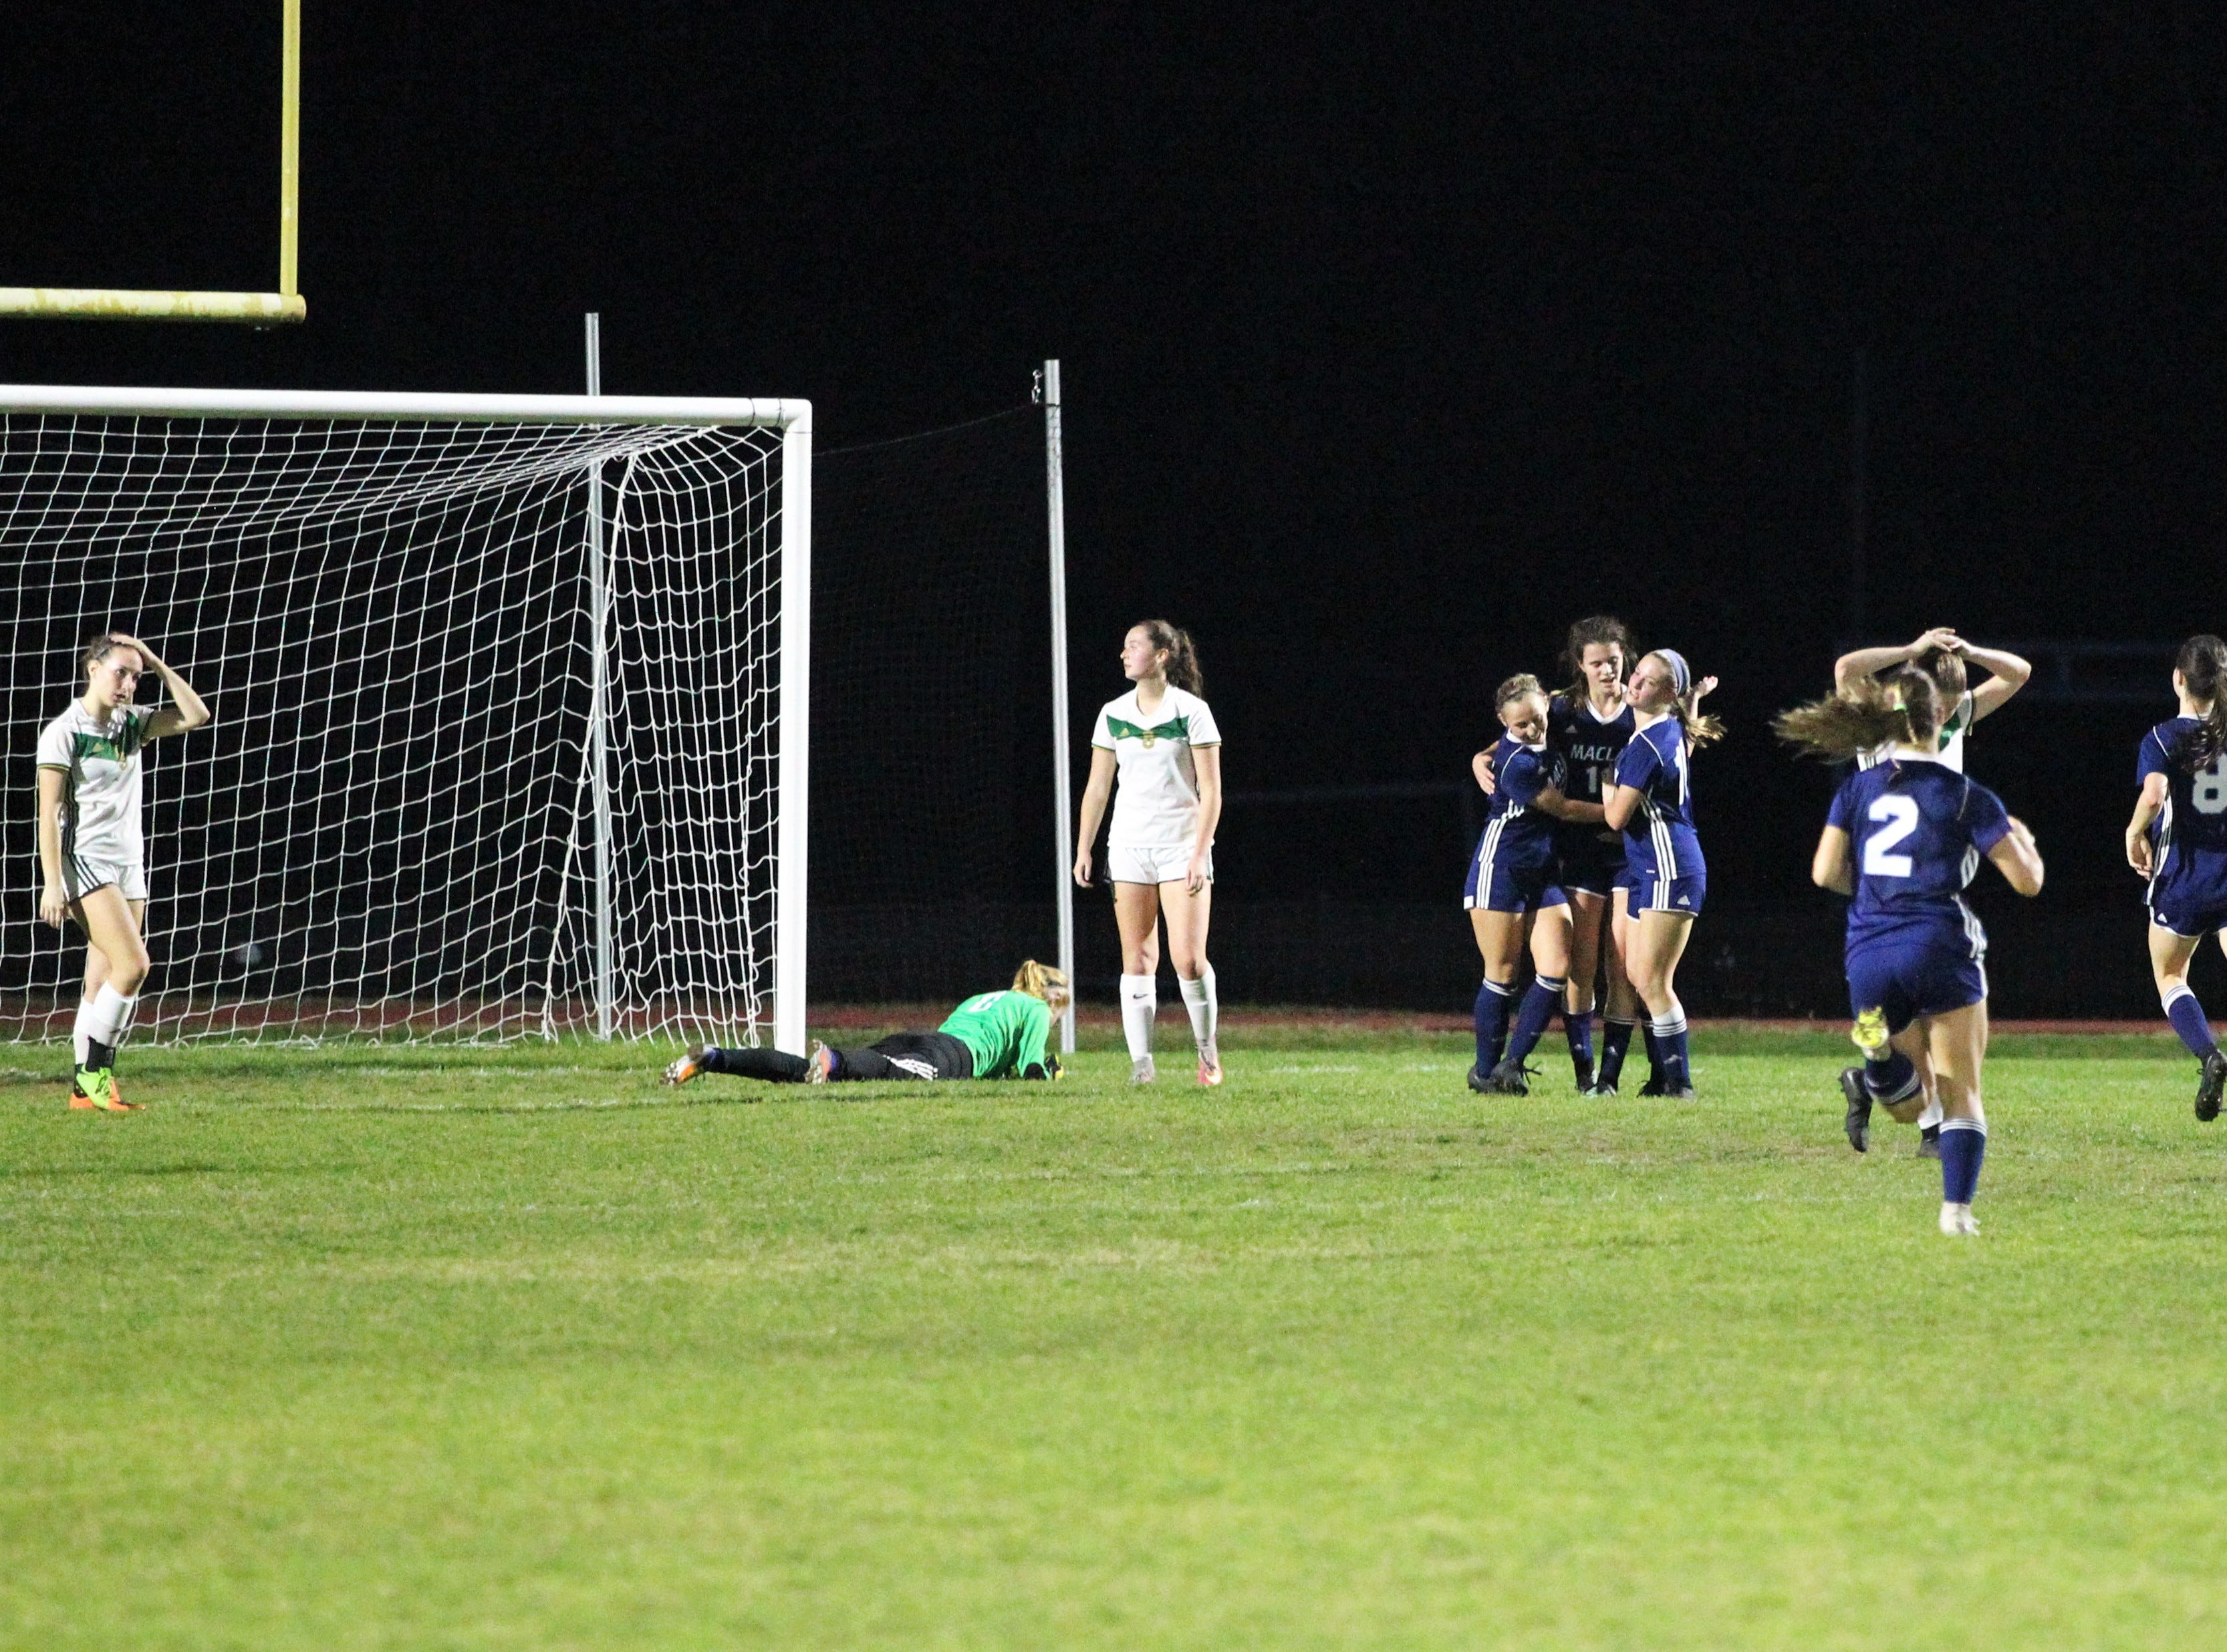 Maclay's Madison Perkins is mobbed after a rebound goal as Maclay's girls soccer team beat St. Joseph Academy 4-0 in a Region 1-1A quarterfinal on Jan. 5, 2019.